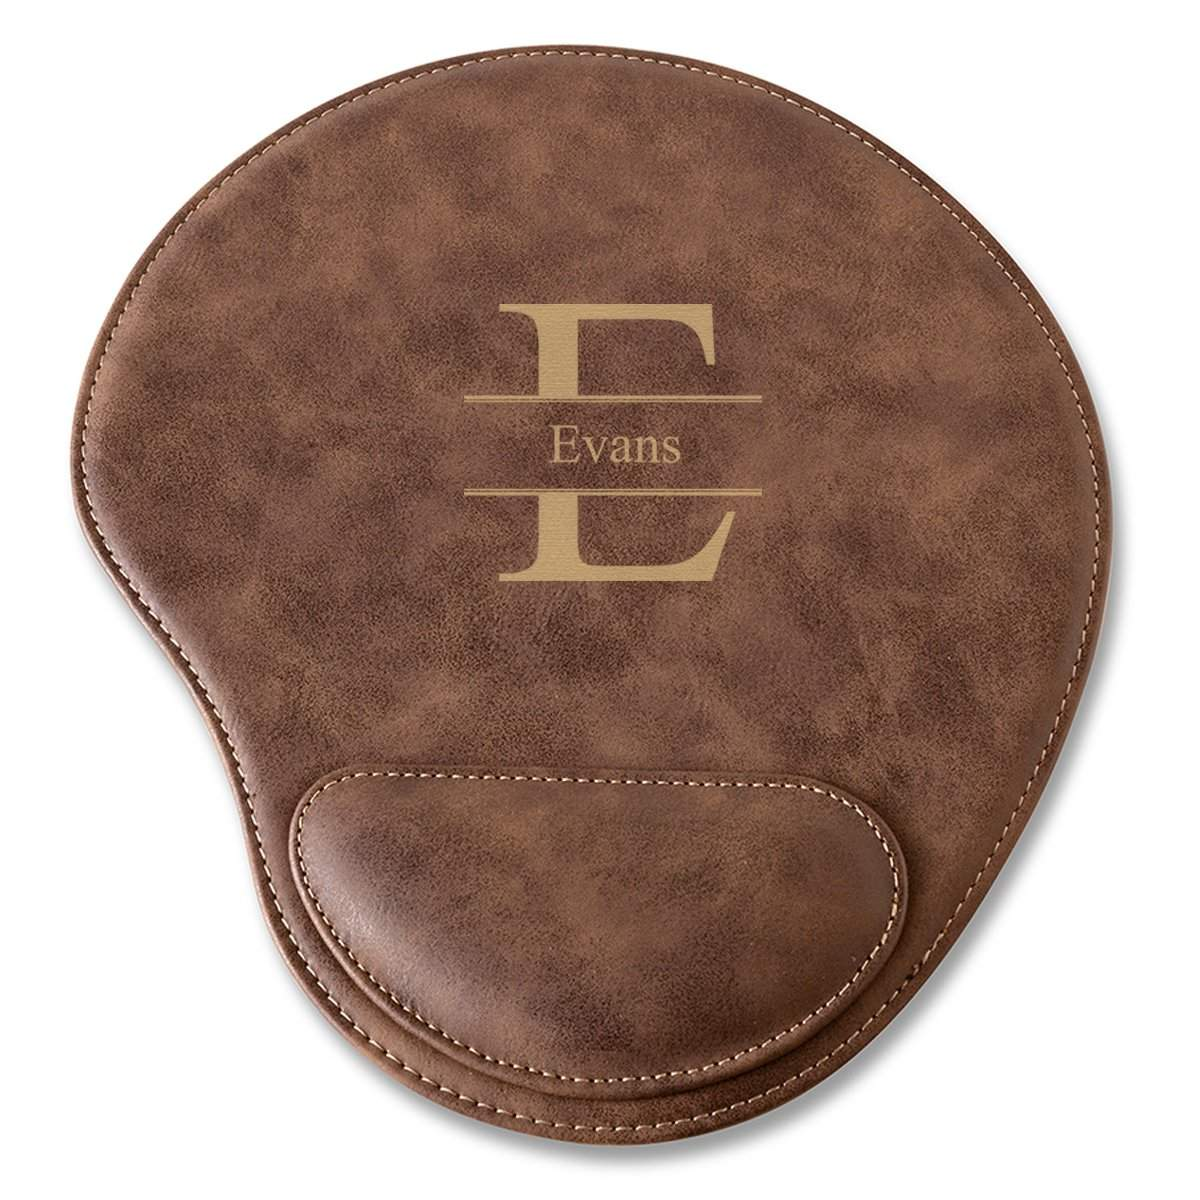 Rustic-Faux-Leather-Personalized-Mouse-Pad